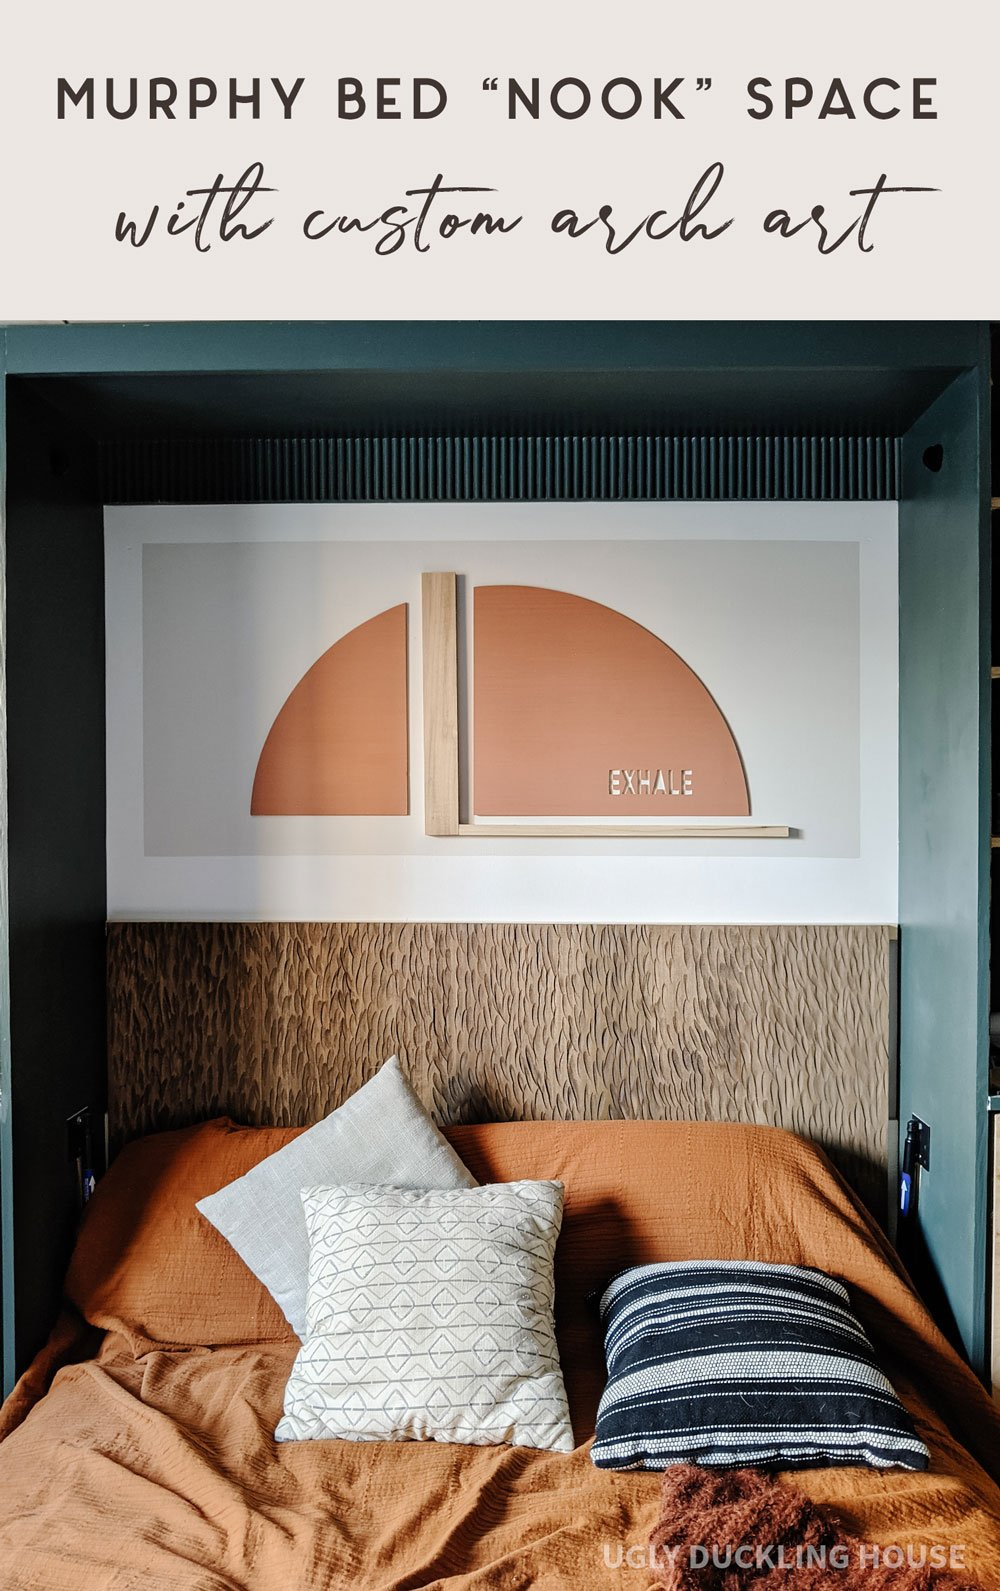 murphy bed nook space with custom arch art